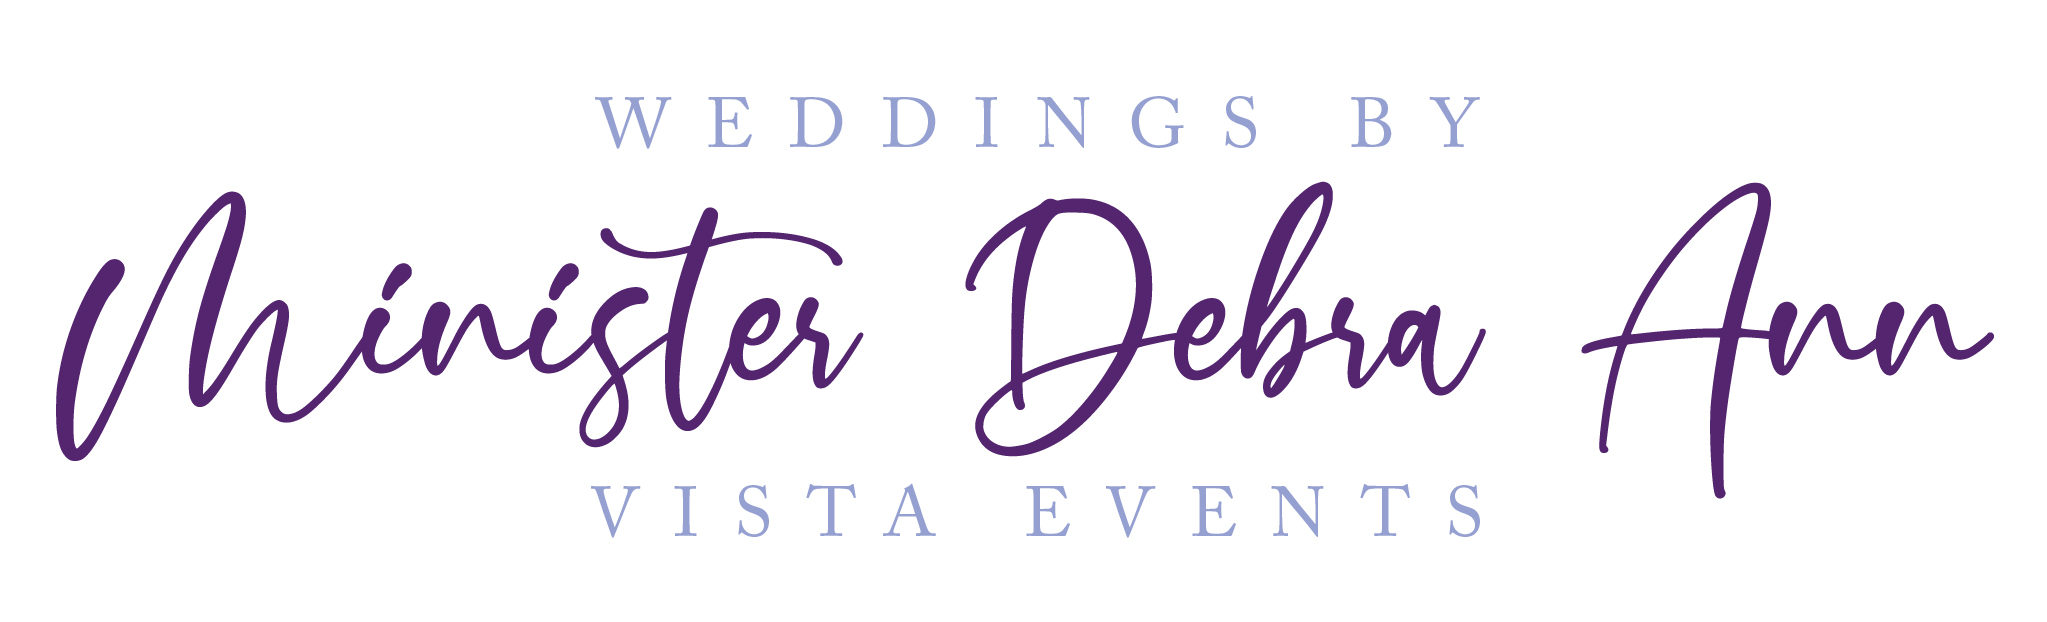 Weddings by Minister Debra Ann